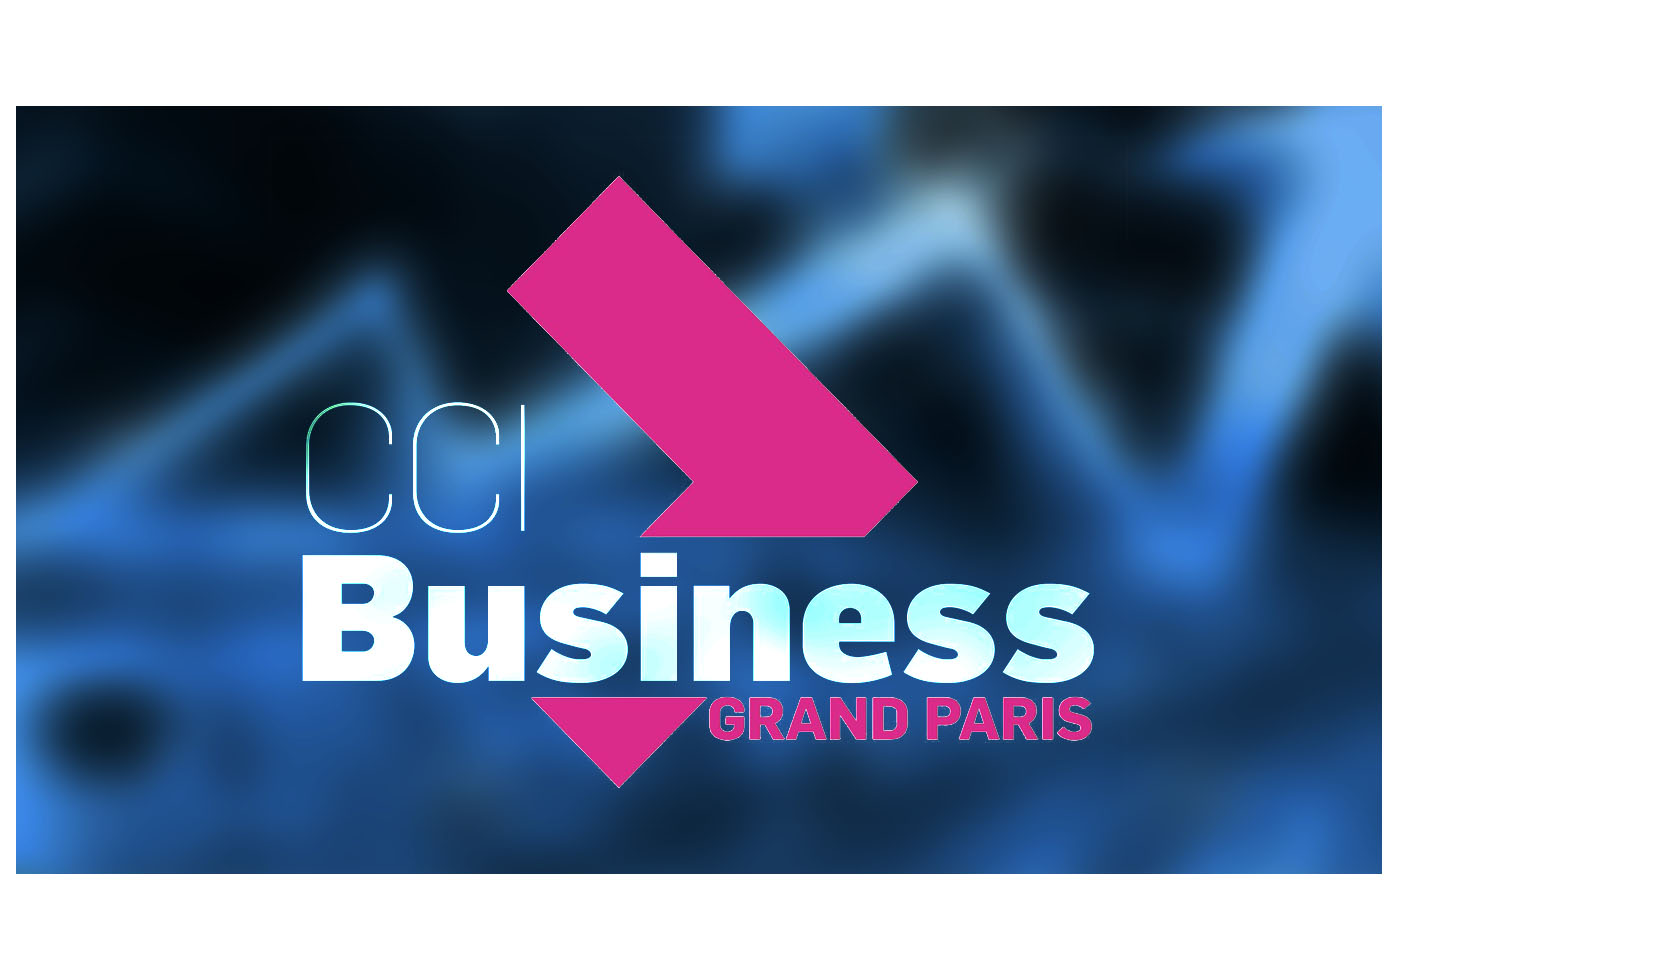 Cci business grand paris vous attend a cci actualit des for Chambre de commerce et industrie marseille